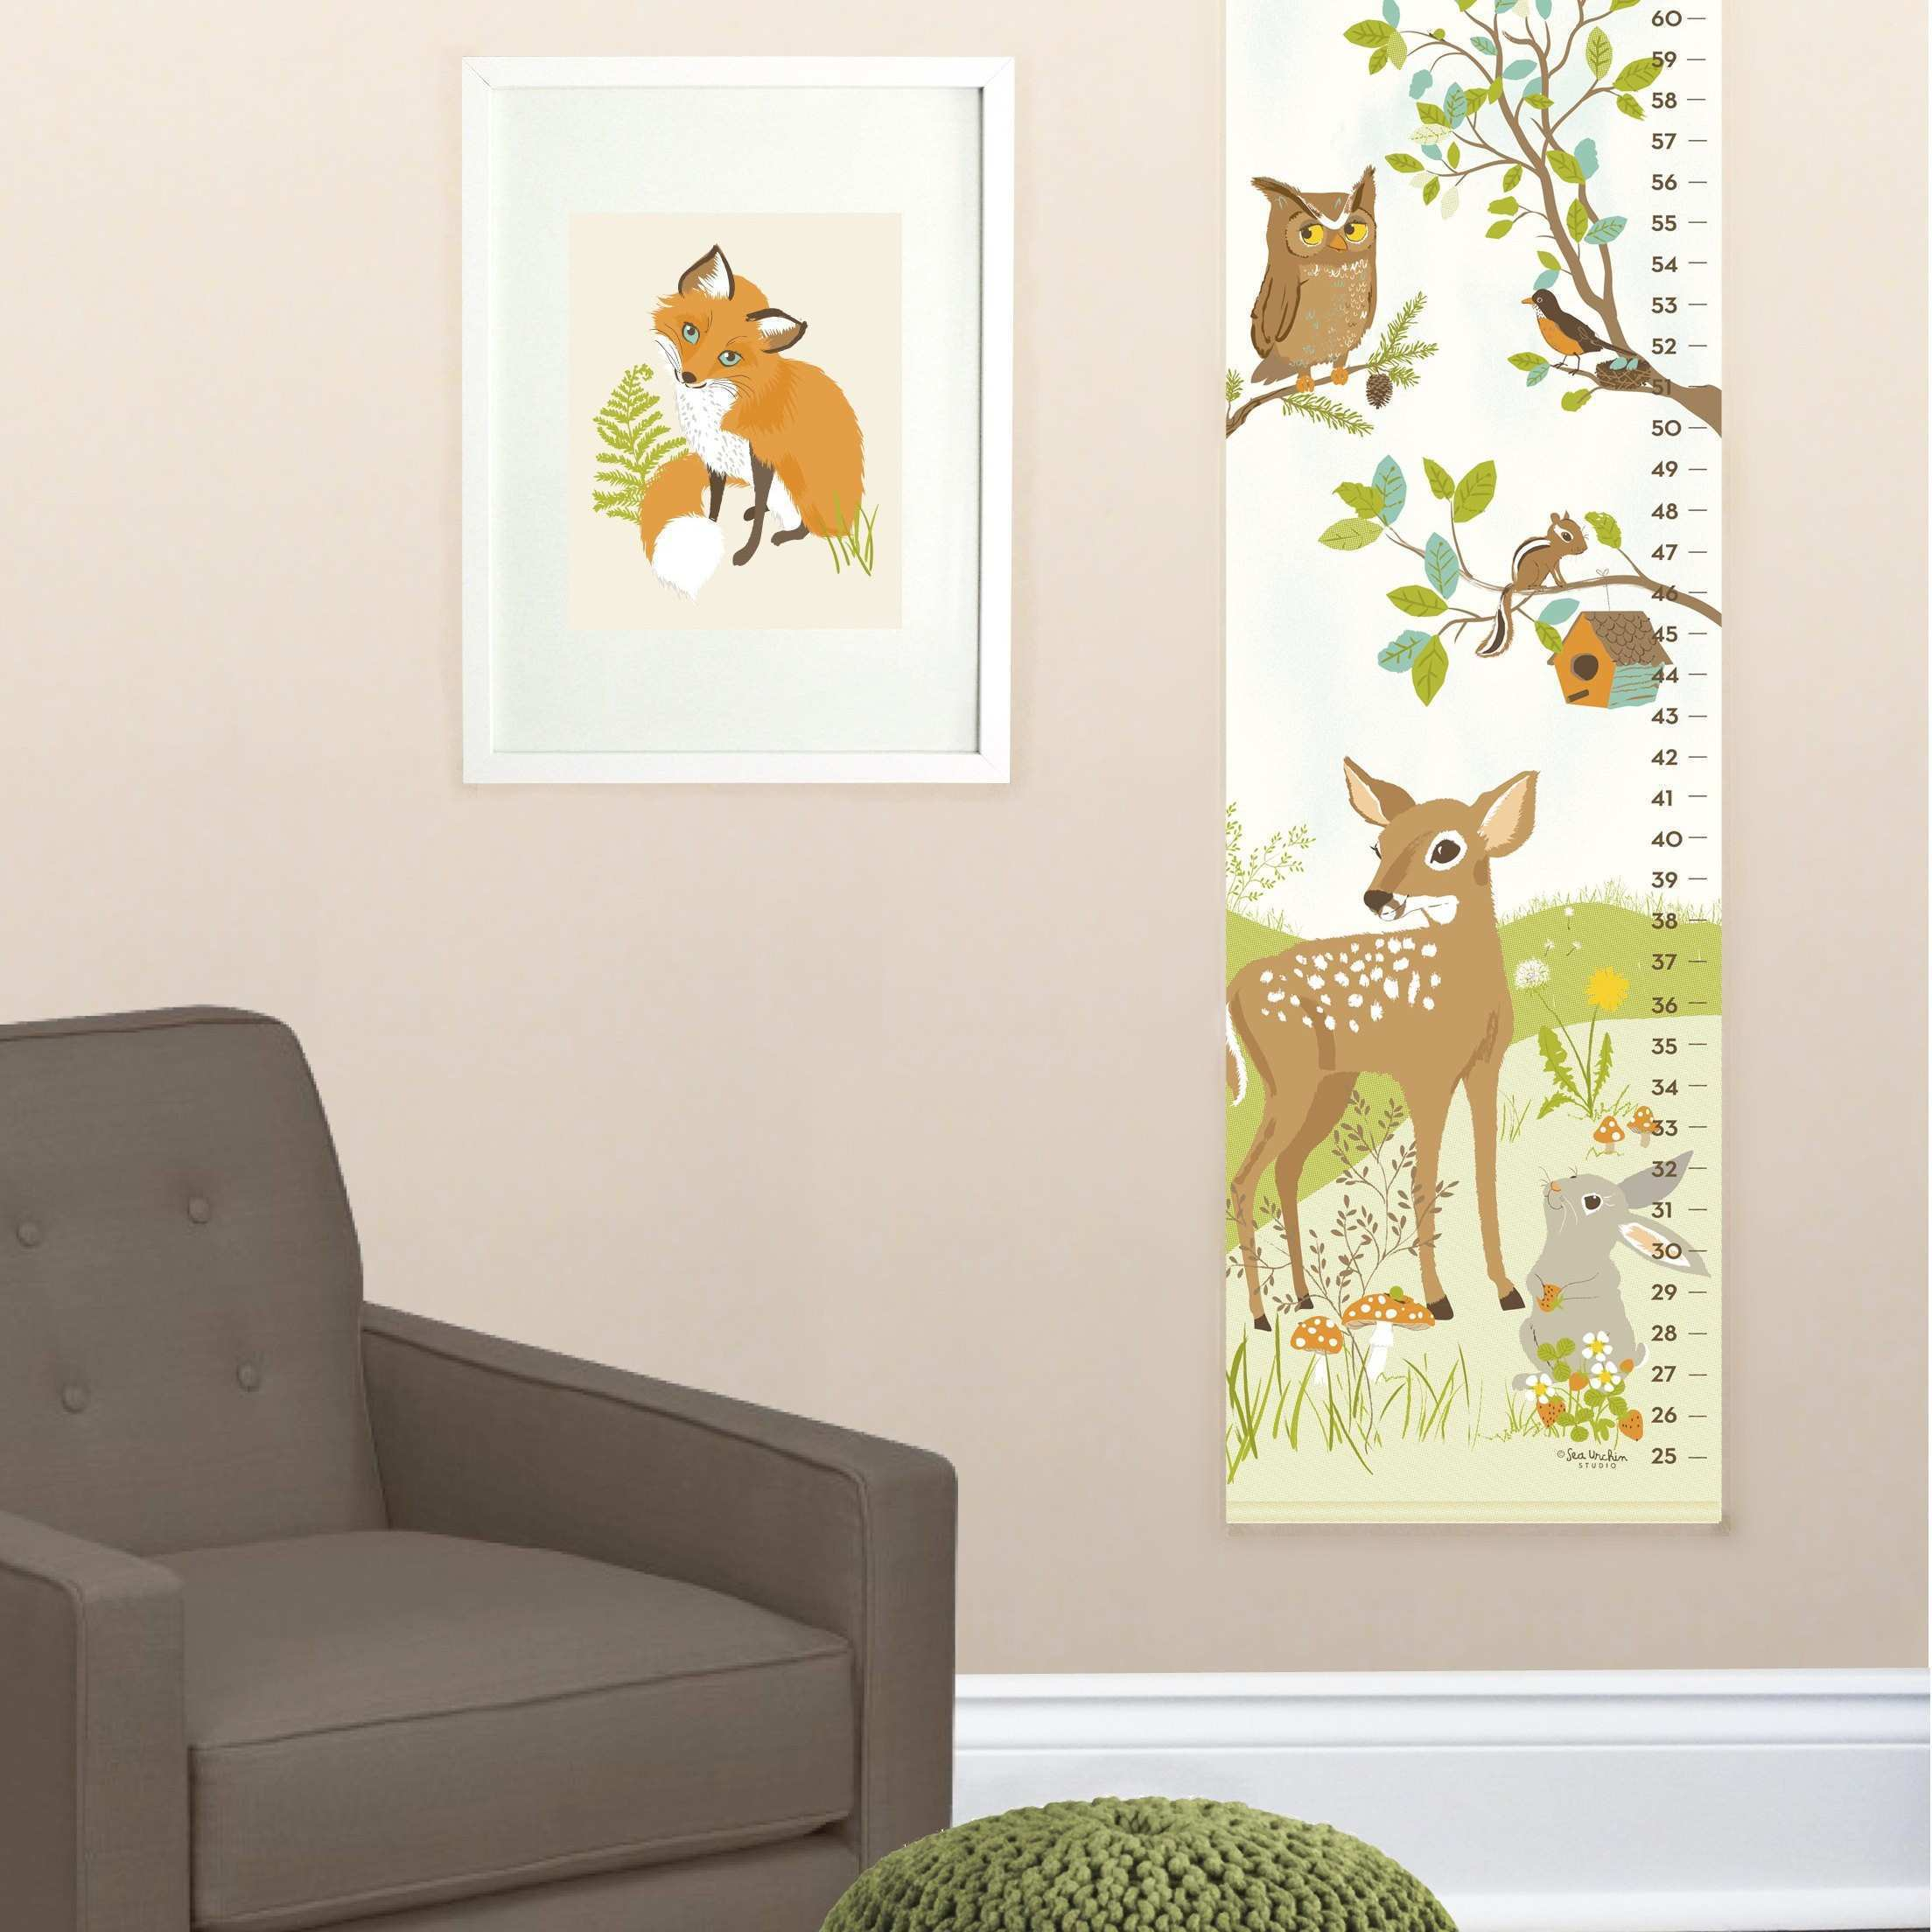 49 Awesome How to Make Wall Decals